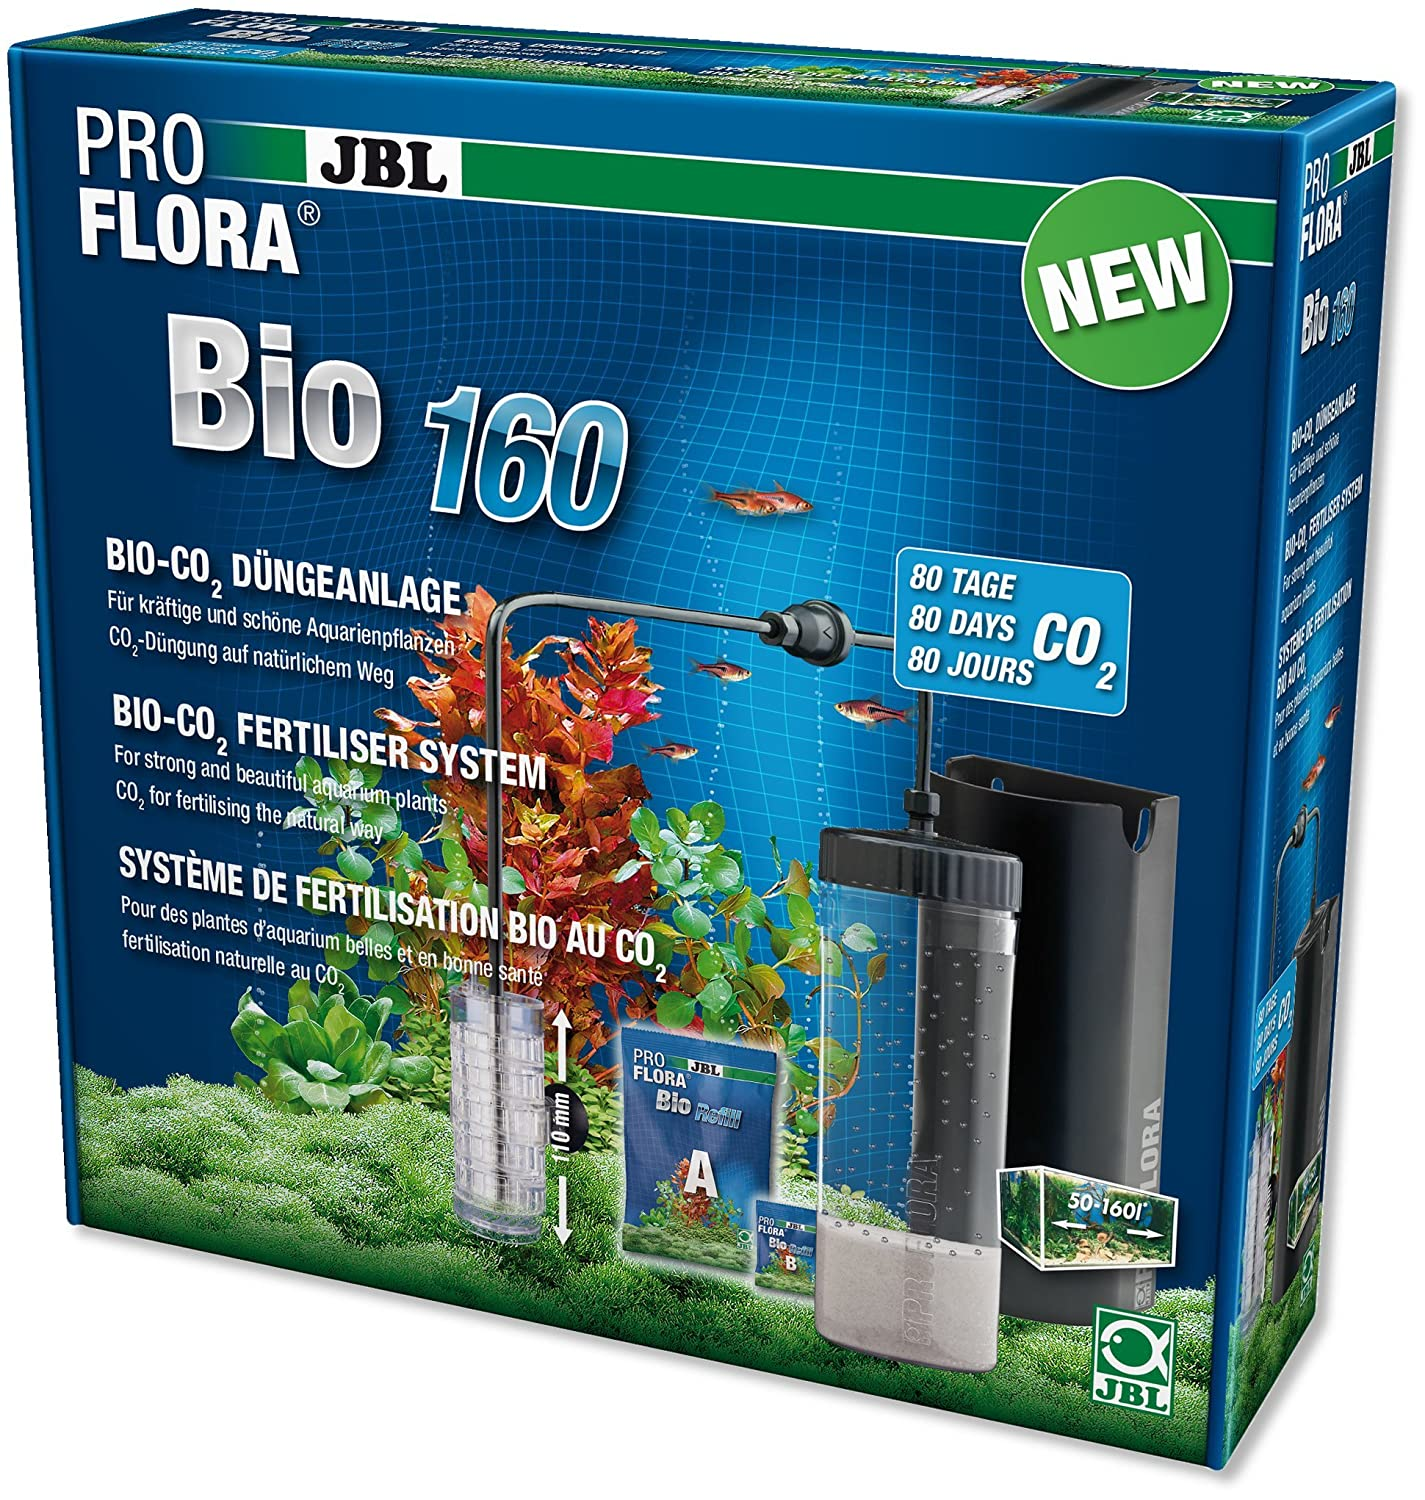 JBL ProFlora bio160 2 (BioCO2 Usage multiple) - Système de fertilisation bio au CO2 à diffuseur extensible 6444600